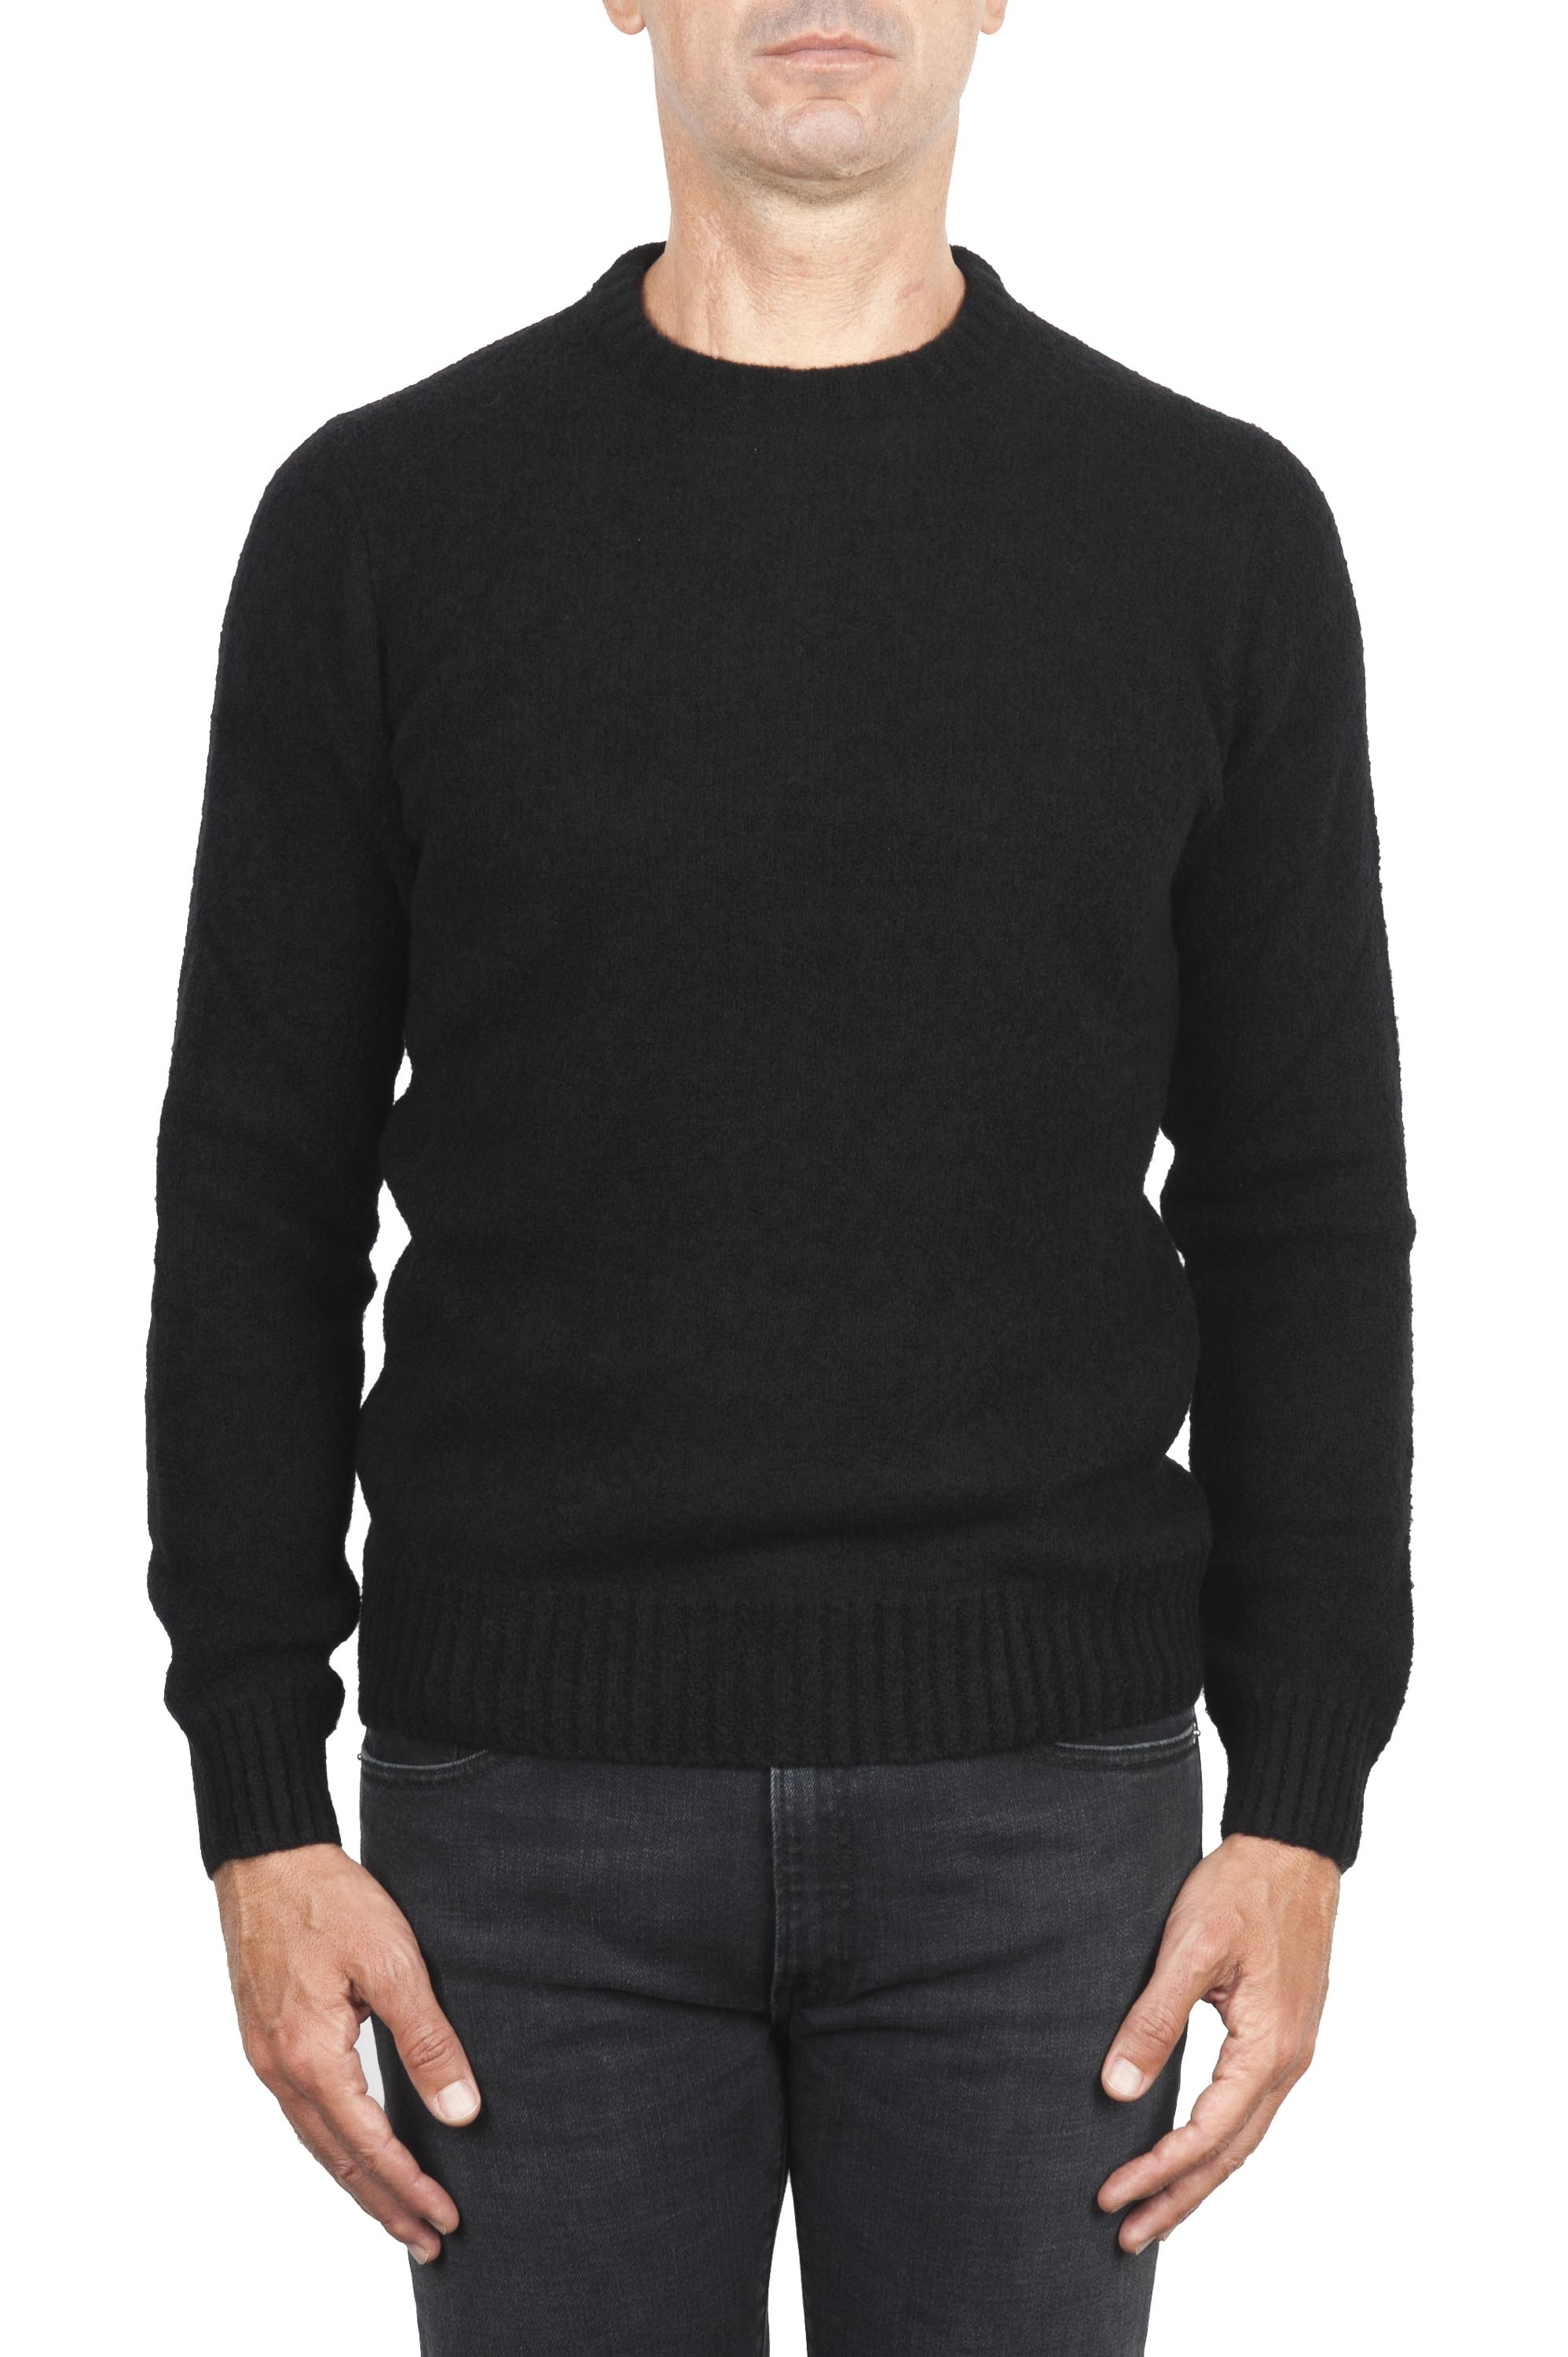 SBU 01471 Black crew neck sweater in boucle merino wool extra fine 01